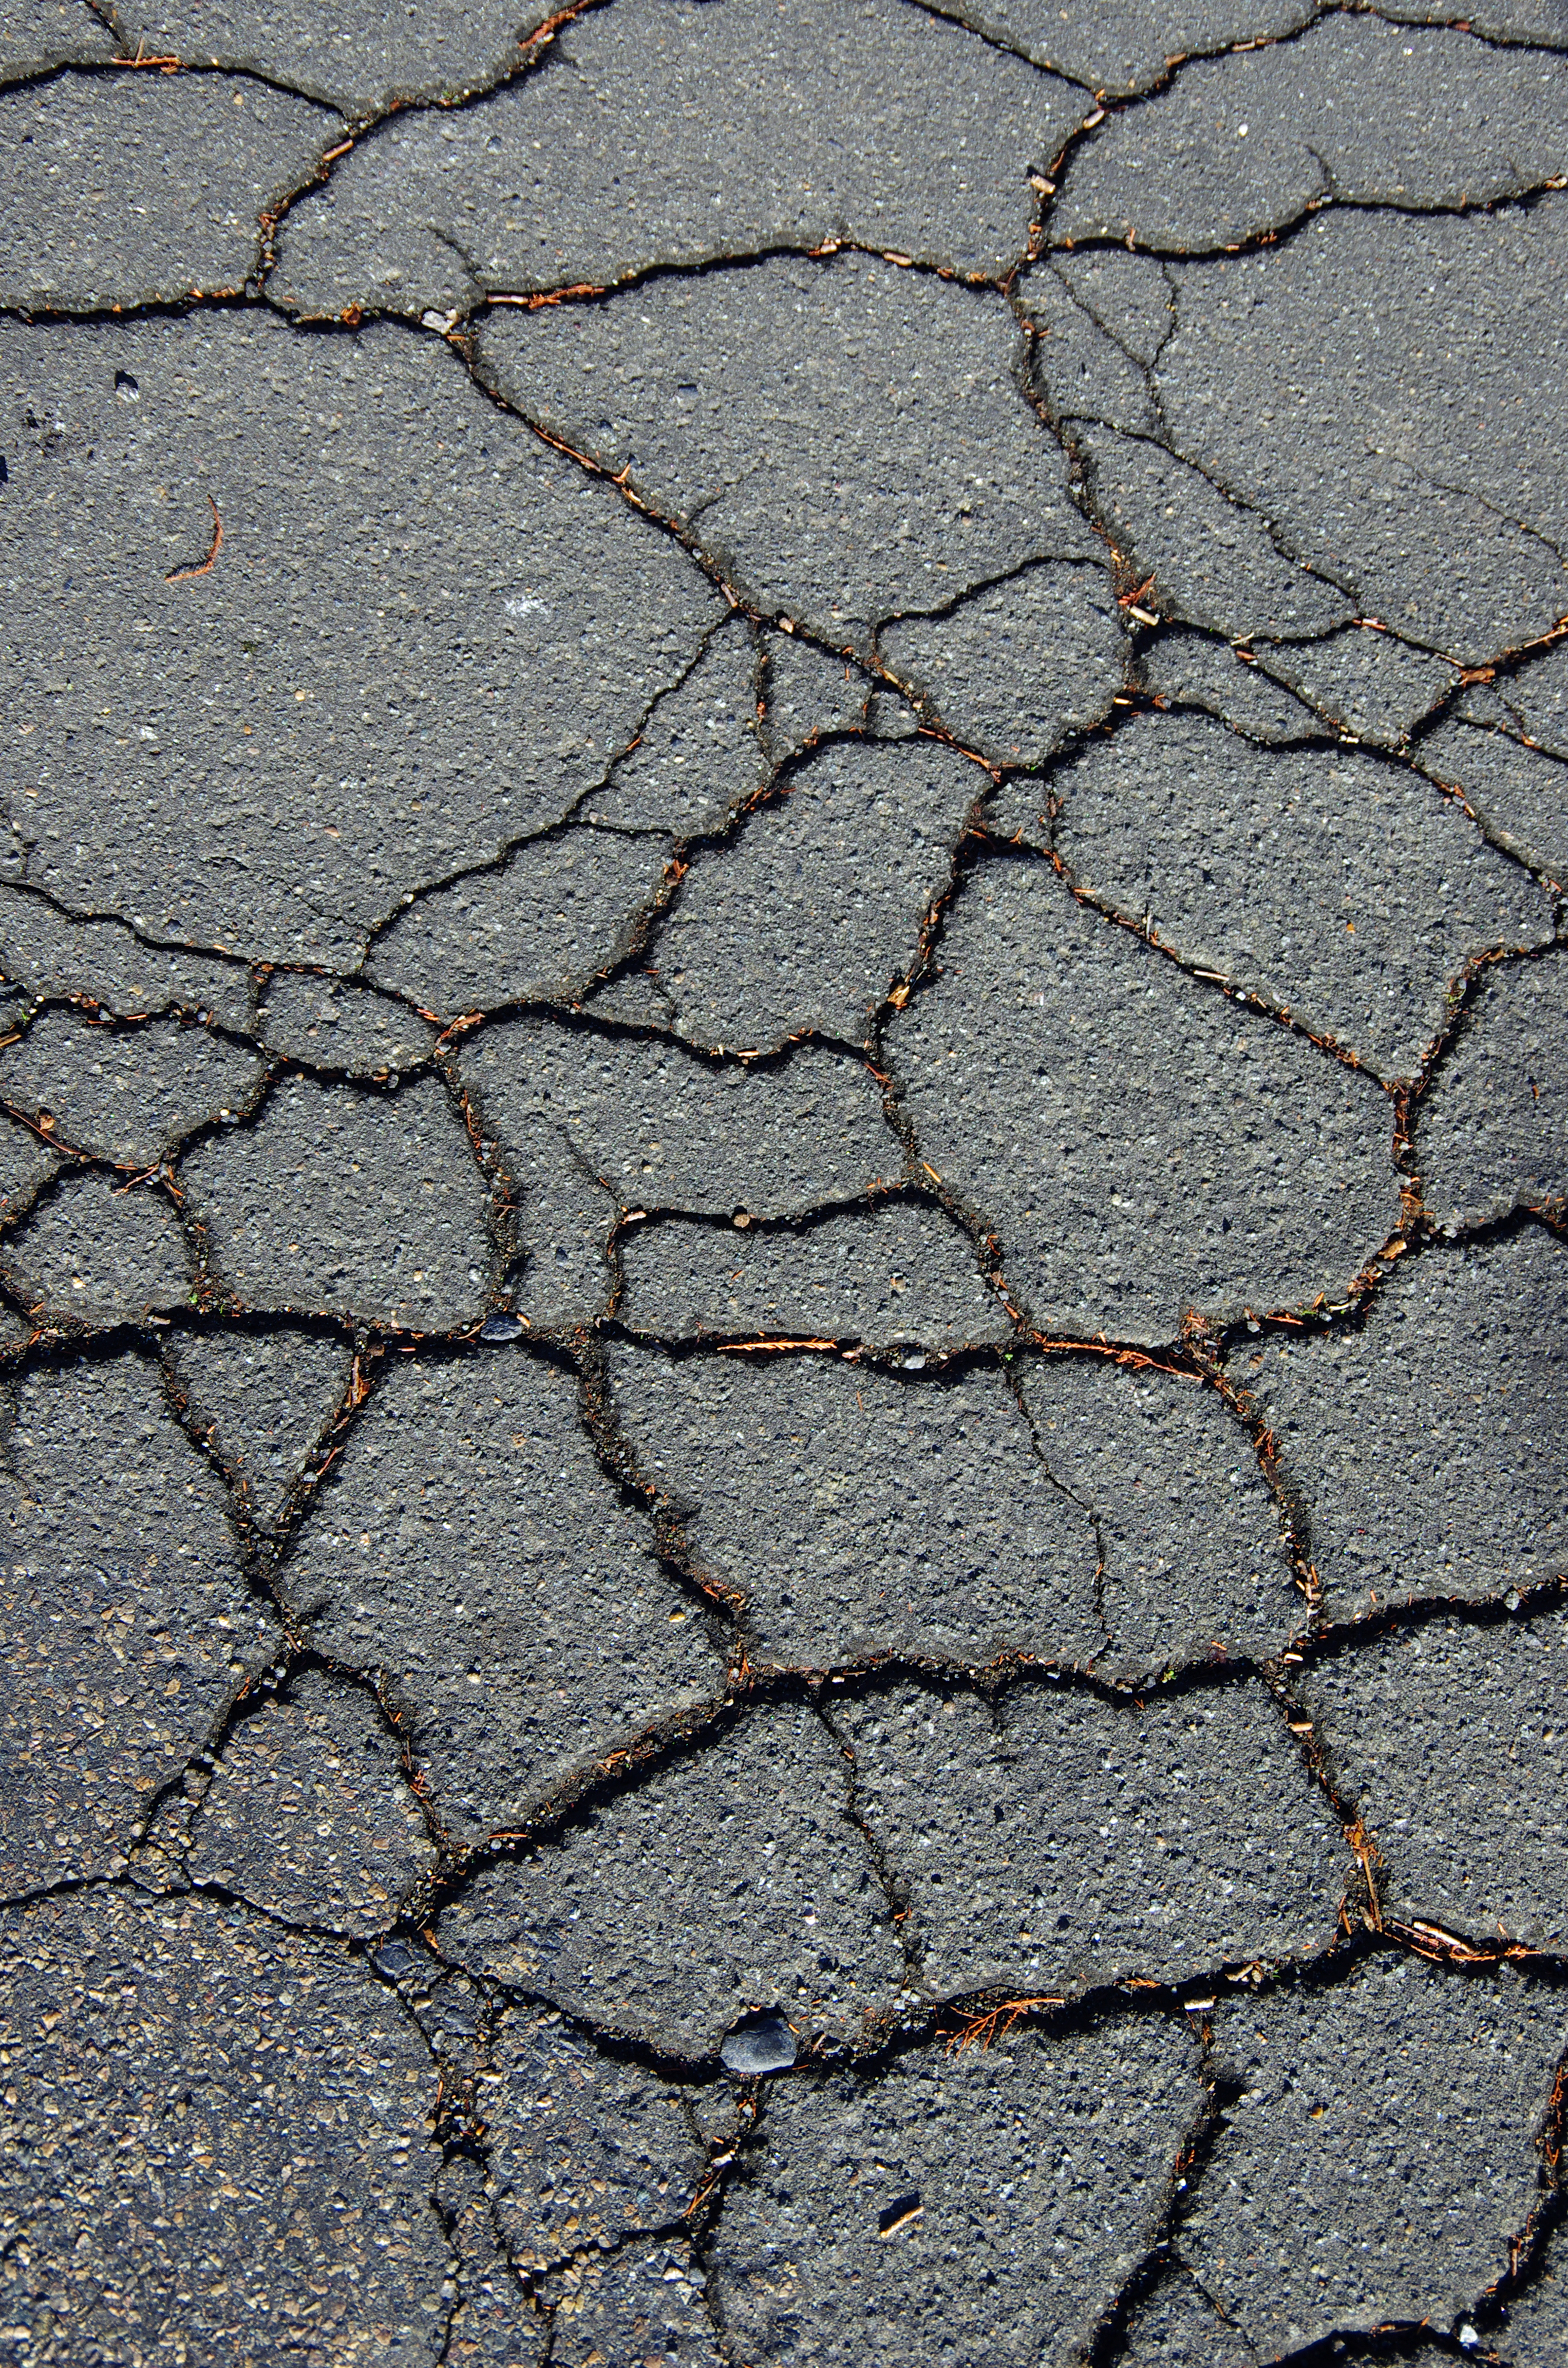 Concrete Slab Repair: What to Do With a Sinking Concrete